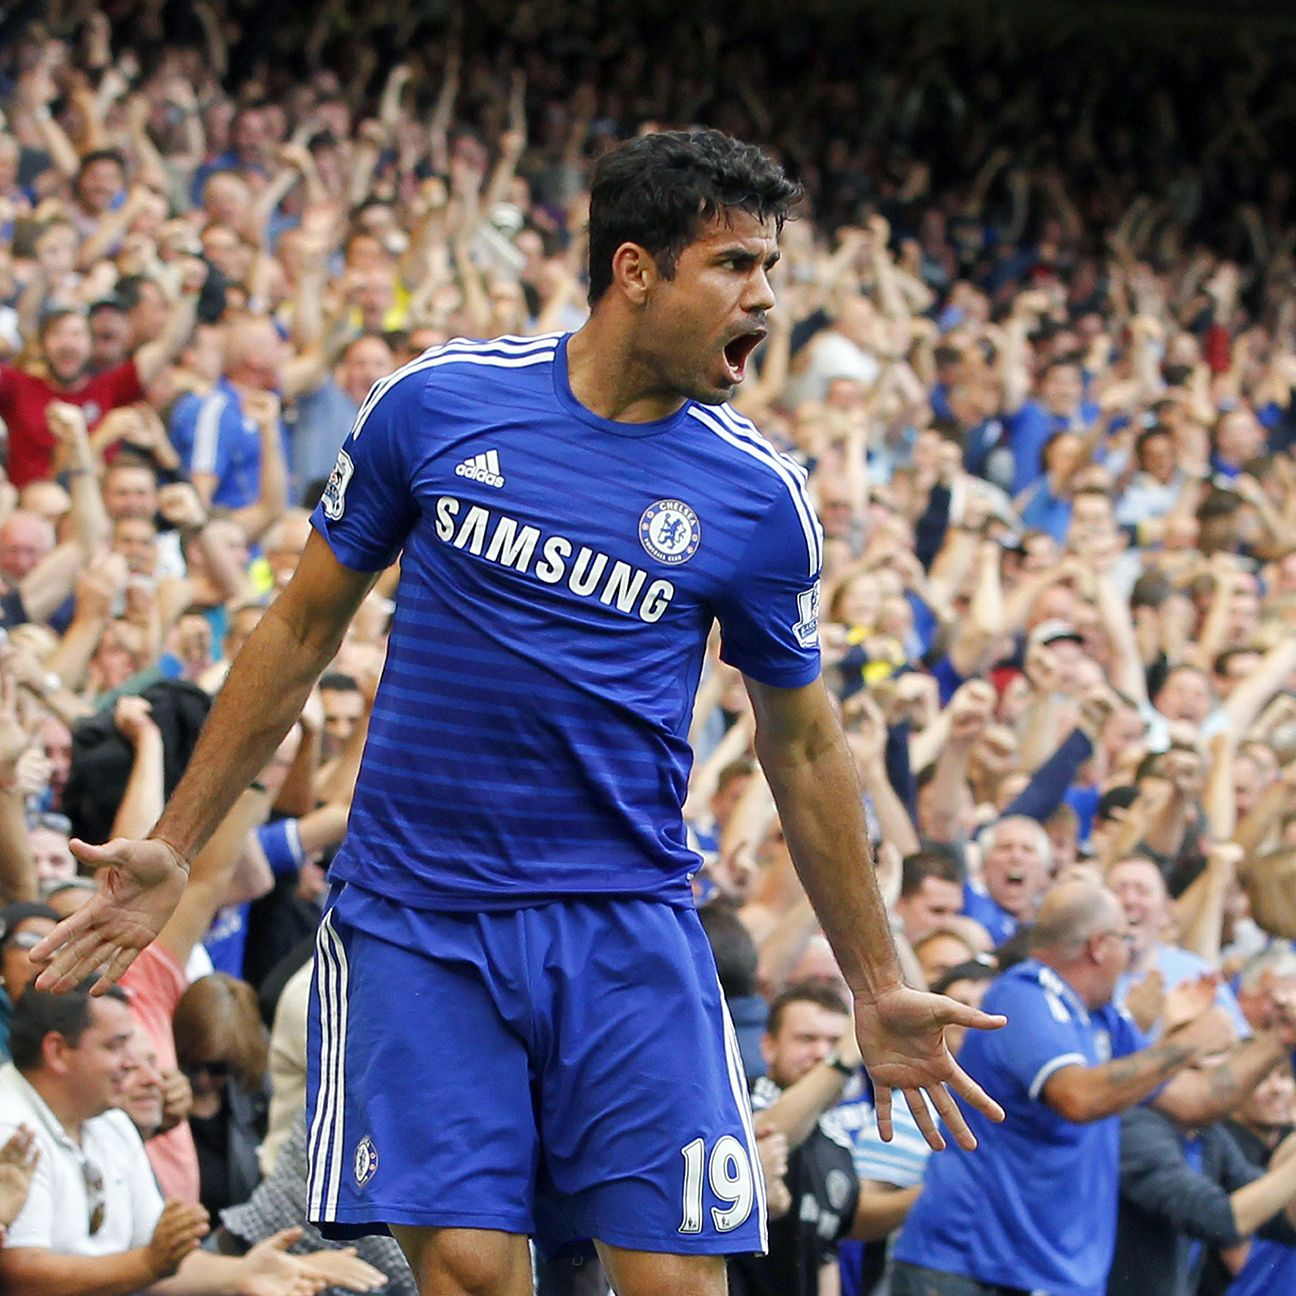 Chelsea's Diego Costa just keeps piling on the goals in his first Premier League season.